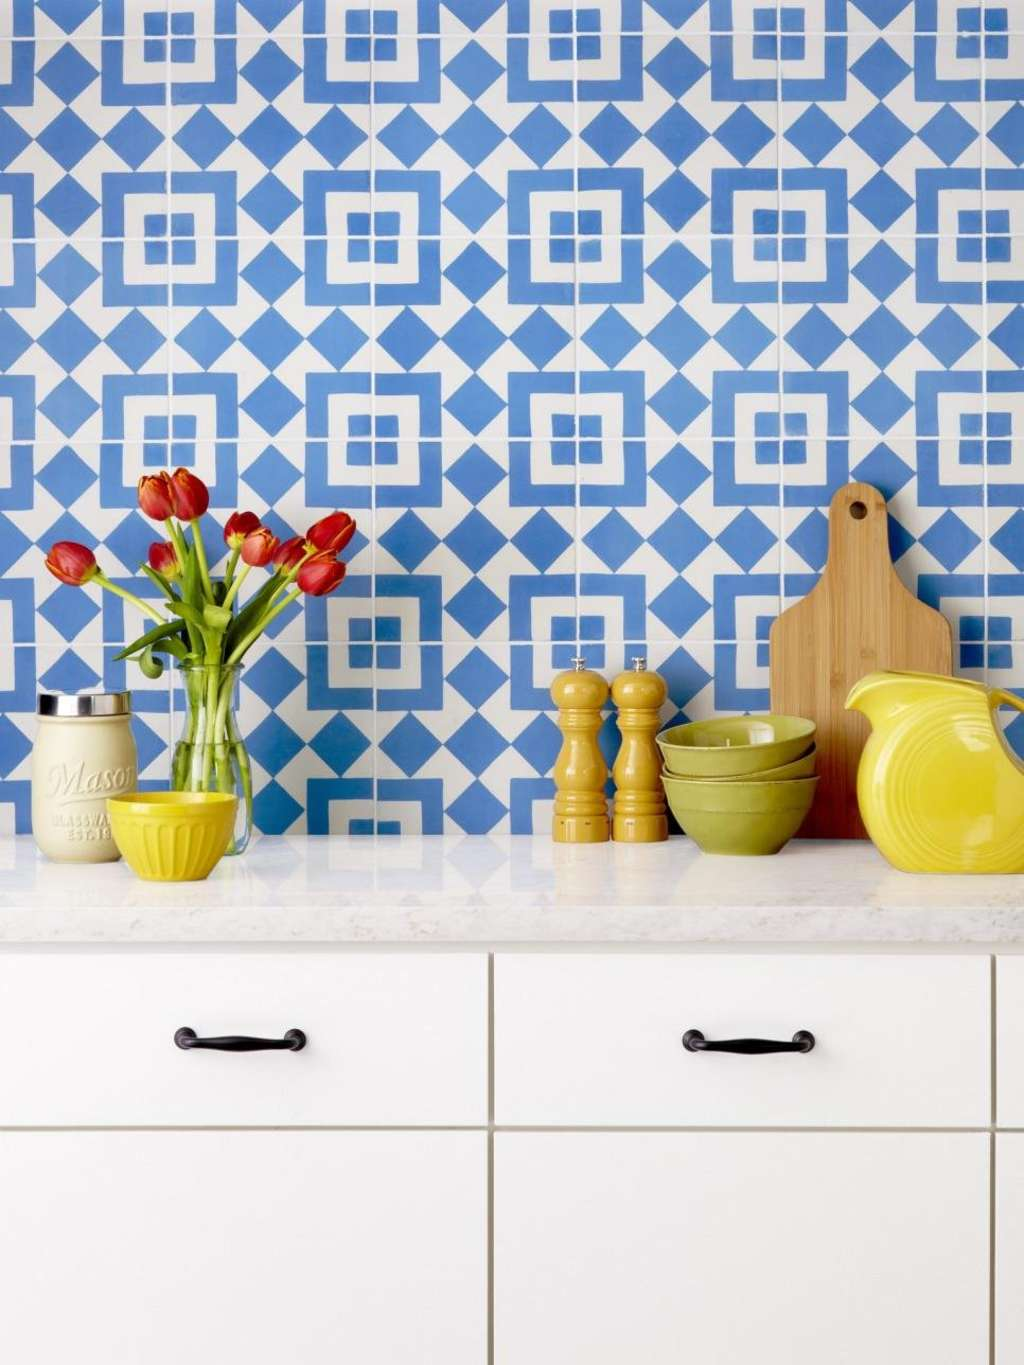 10 Beautiful Encaustic Tile Backsplashes | Kitchn